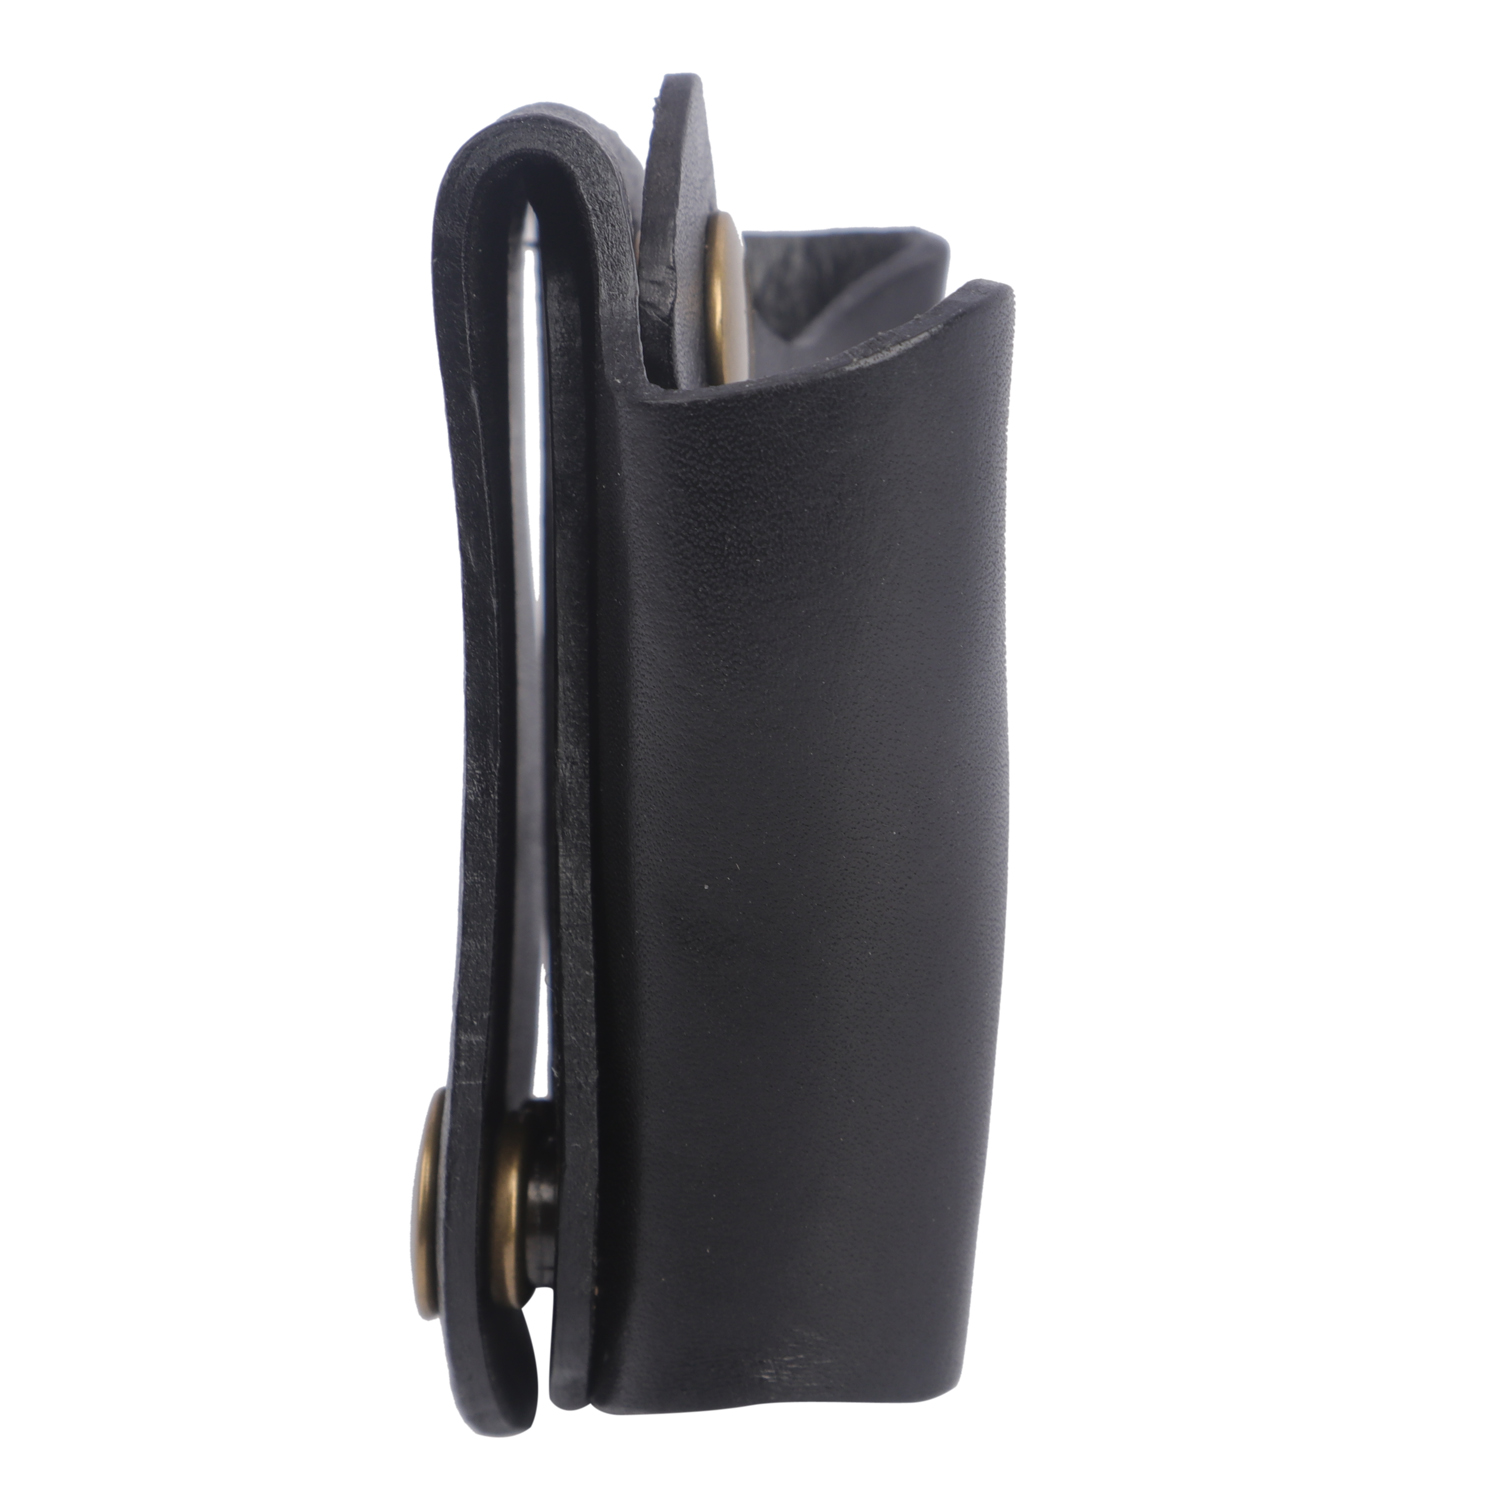 HIBO Hand made genuine leather handcuffs sheath